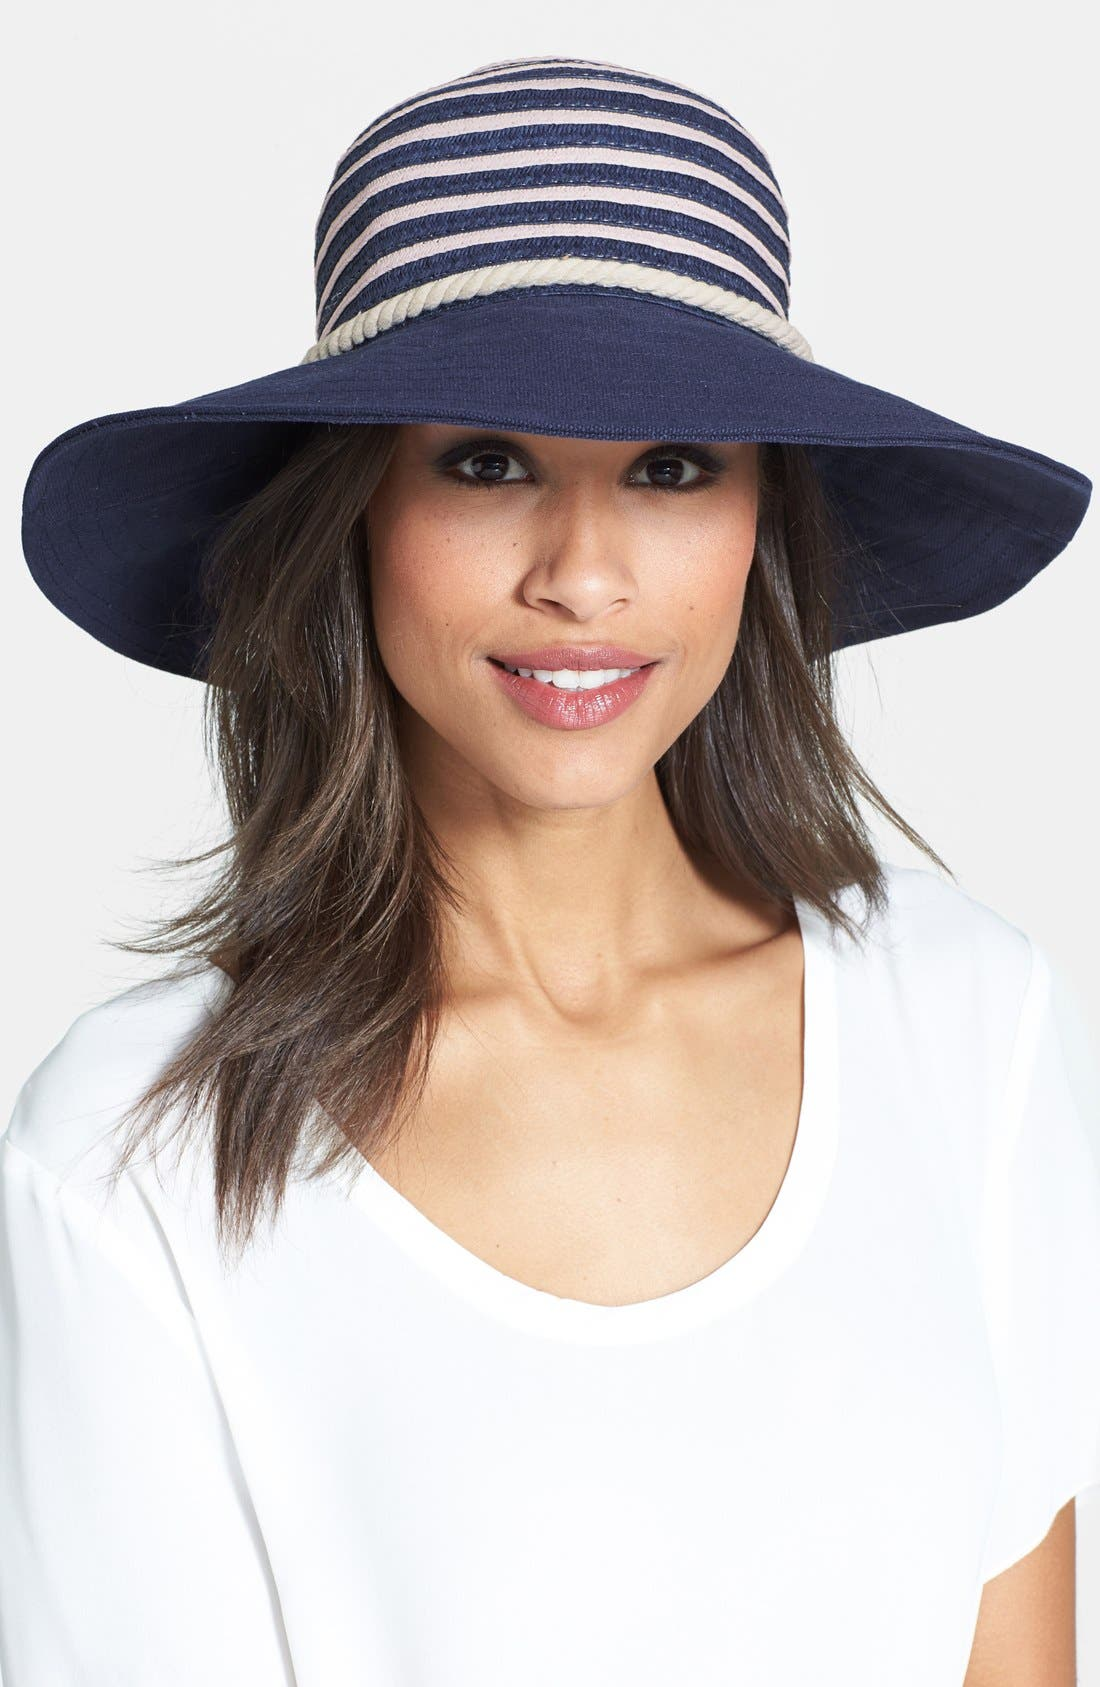 Alternate Image 1 Selected - Sperry Top-Sider® Stripe Floppy Hat